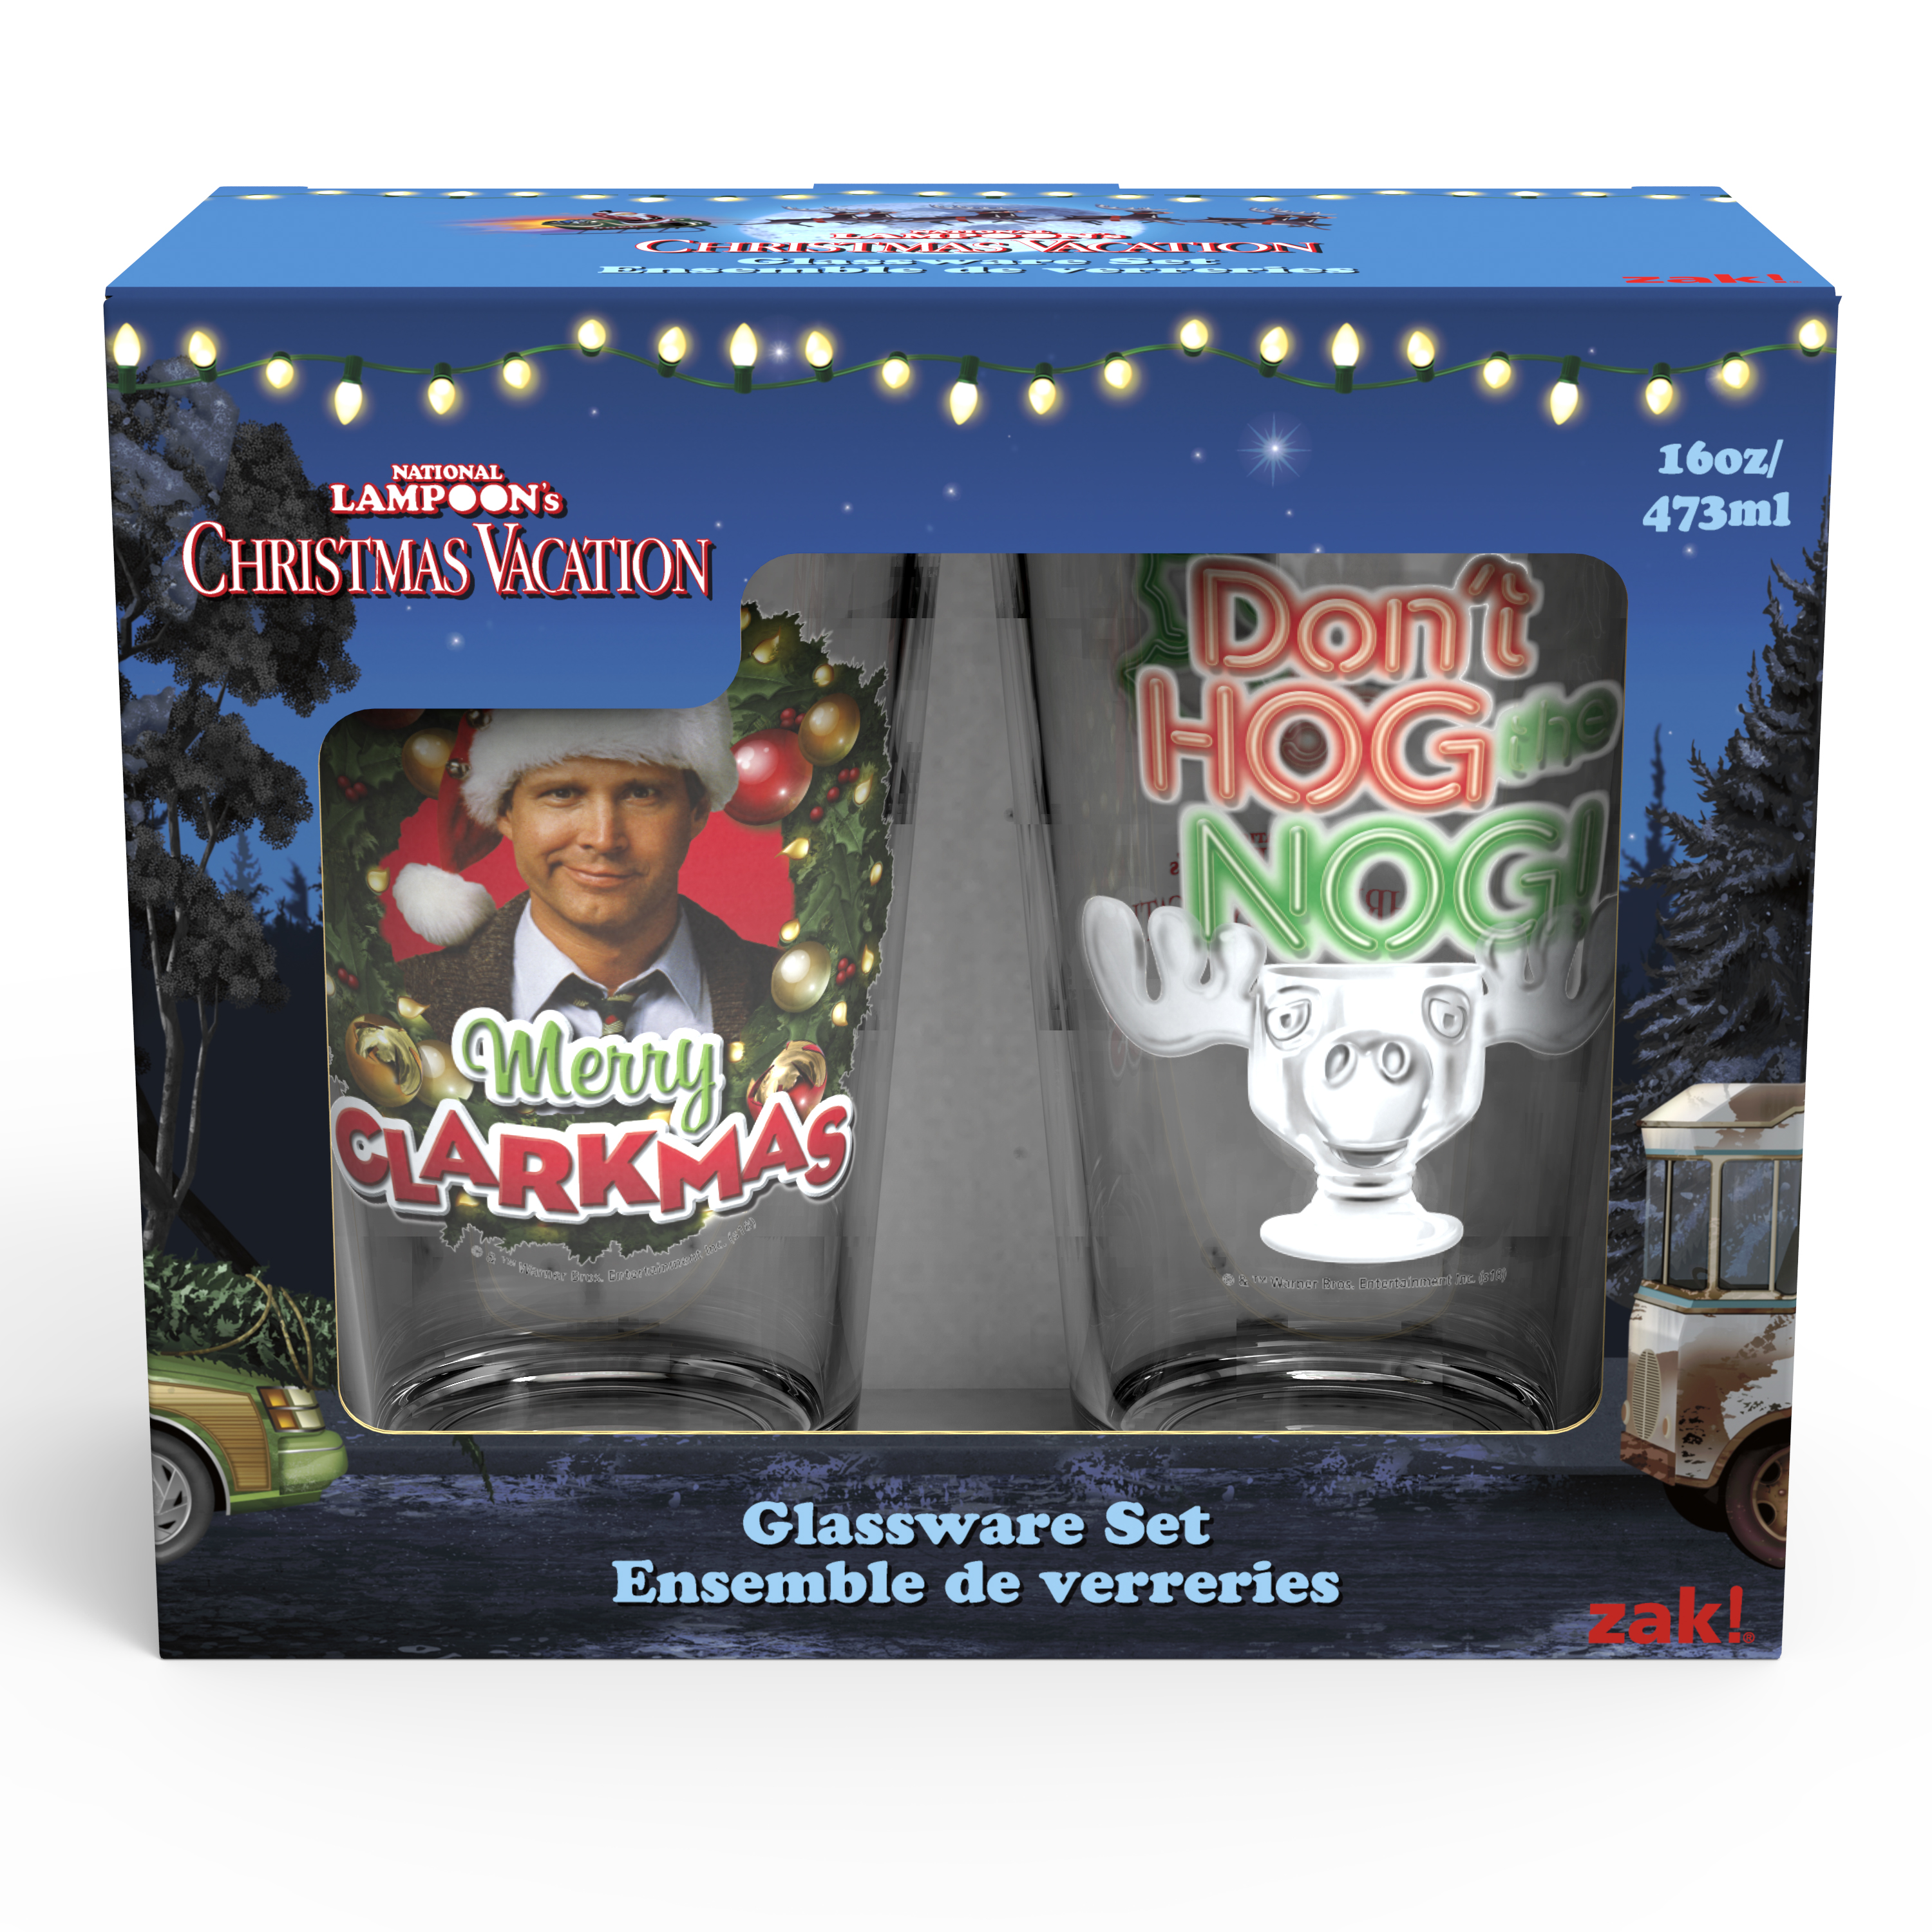 National Lampoon's Christmas Vacation 16 ounce Pint Glasses, Clark Griswold, 2-piece set slideshow image 5